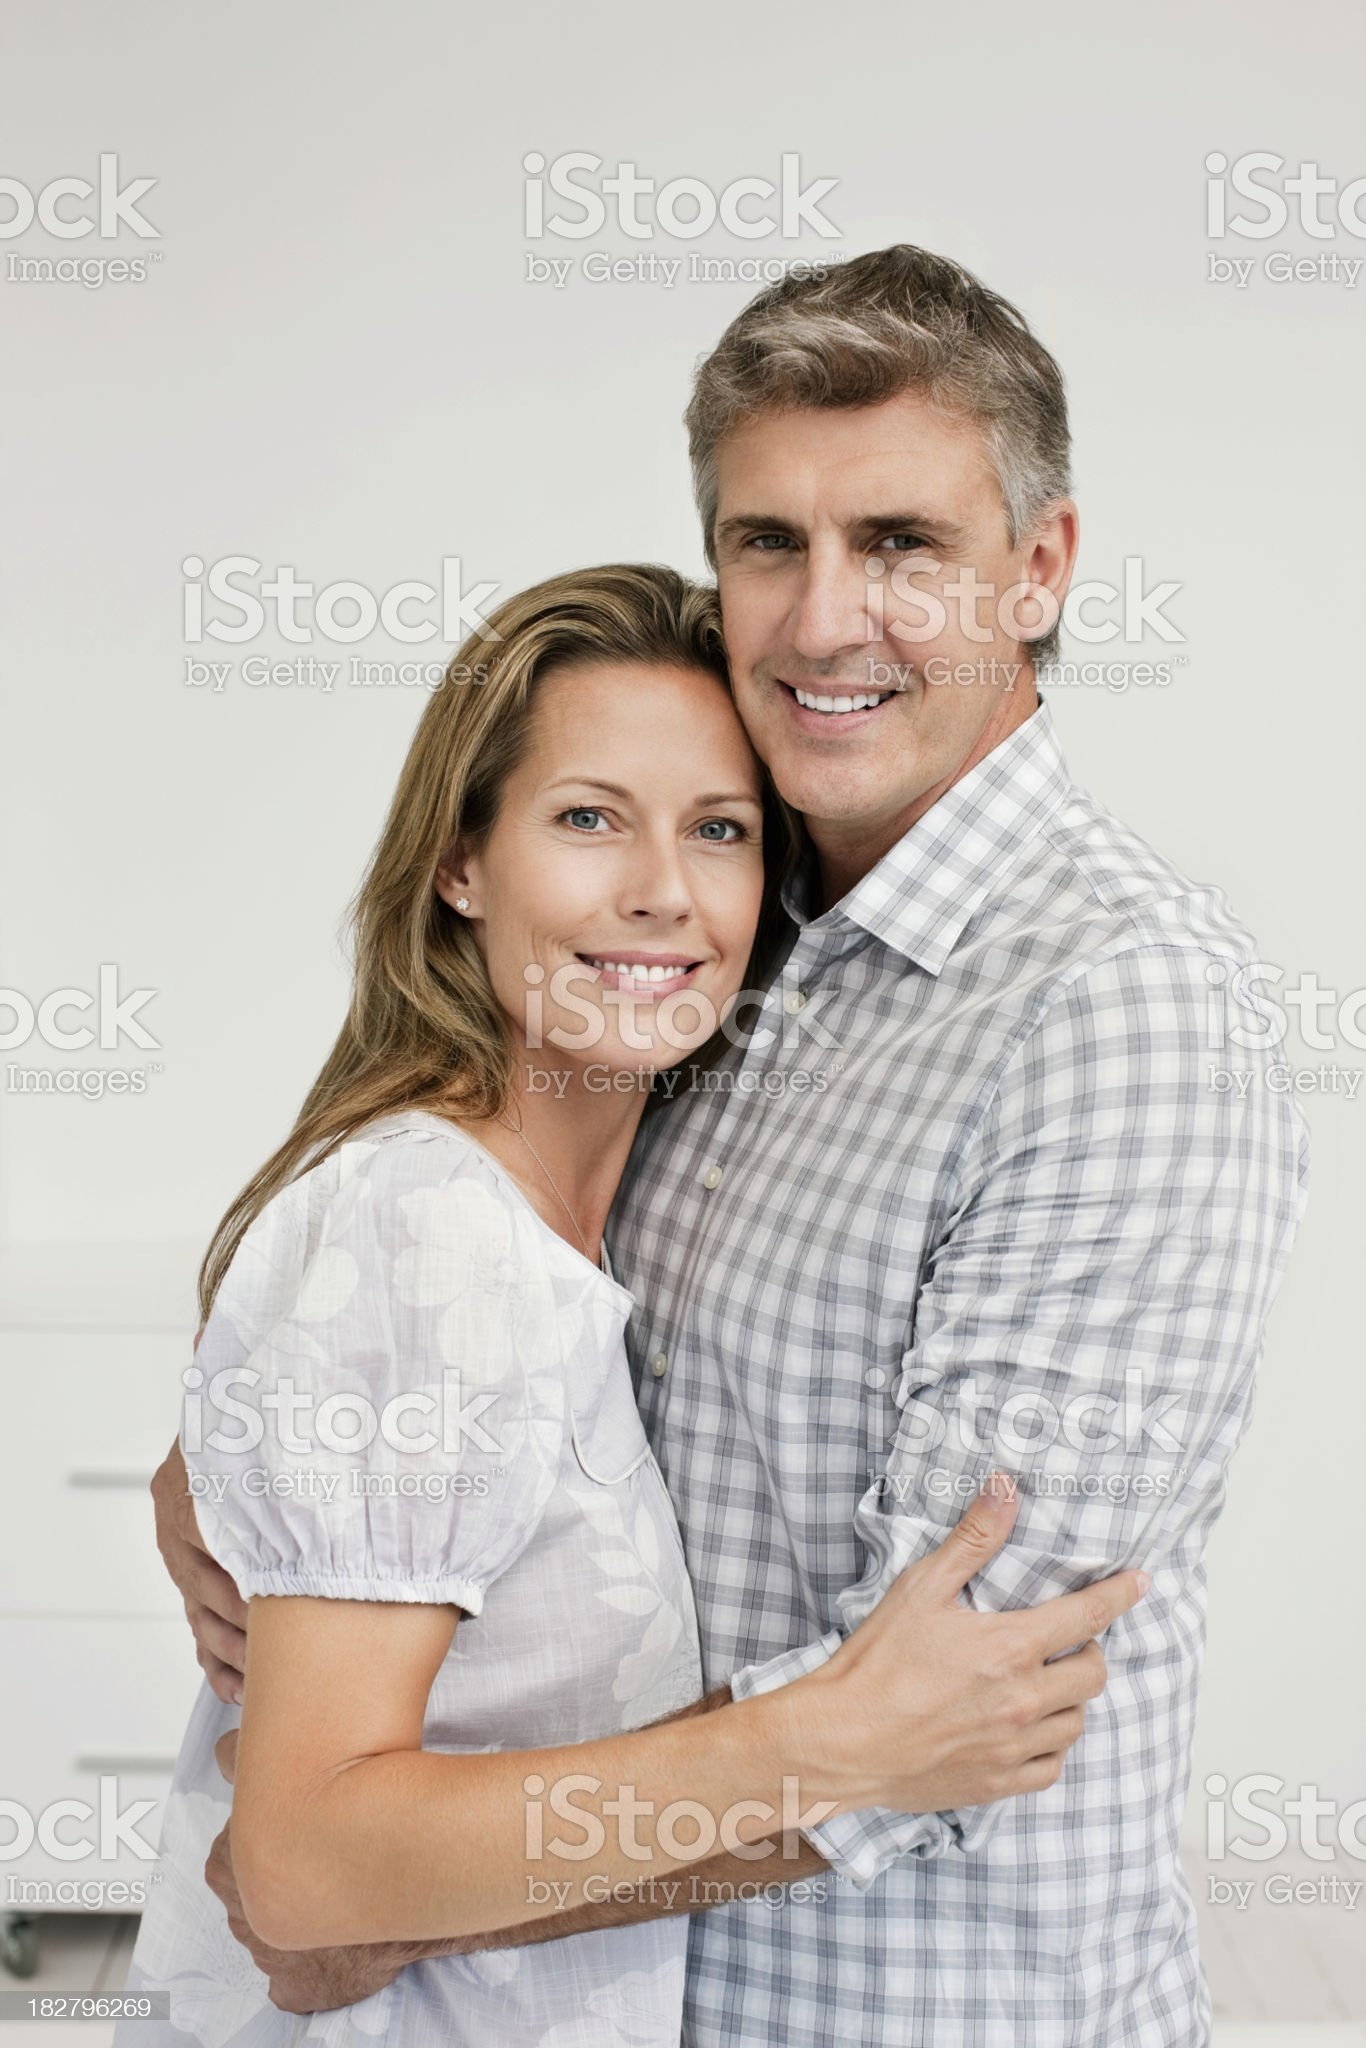 Man and Woman Embracing royalty-free stock photo